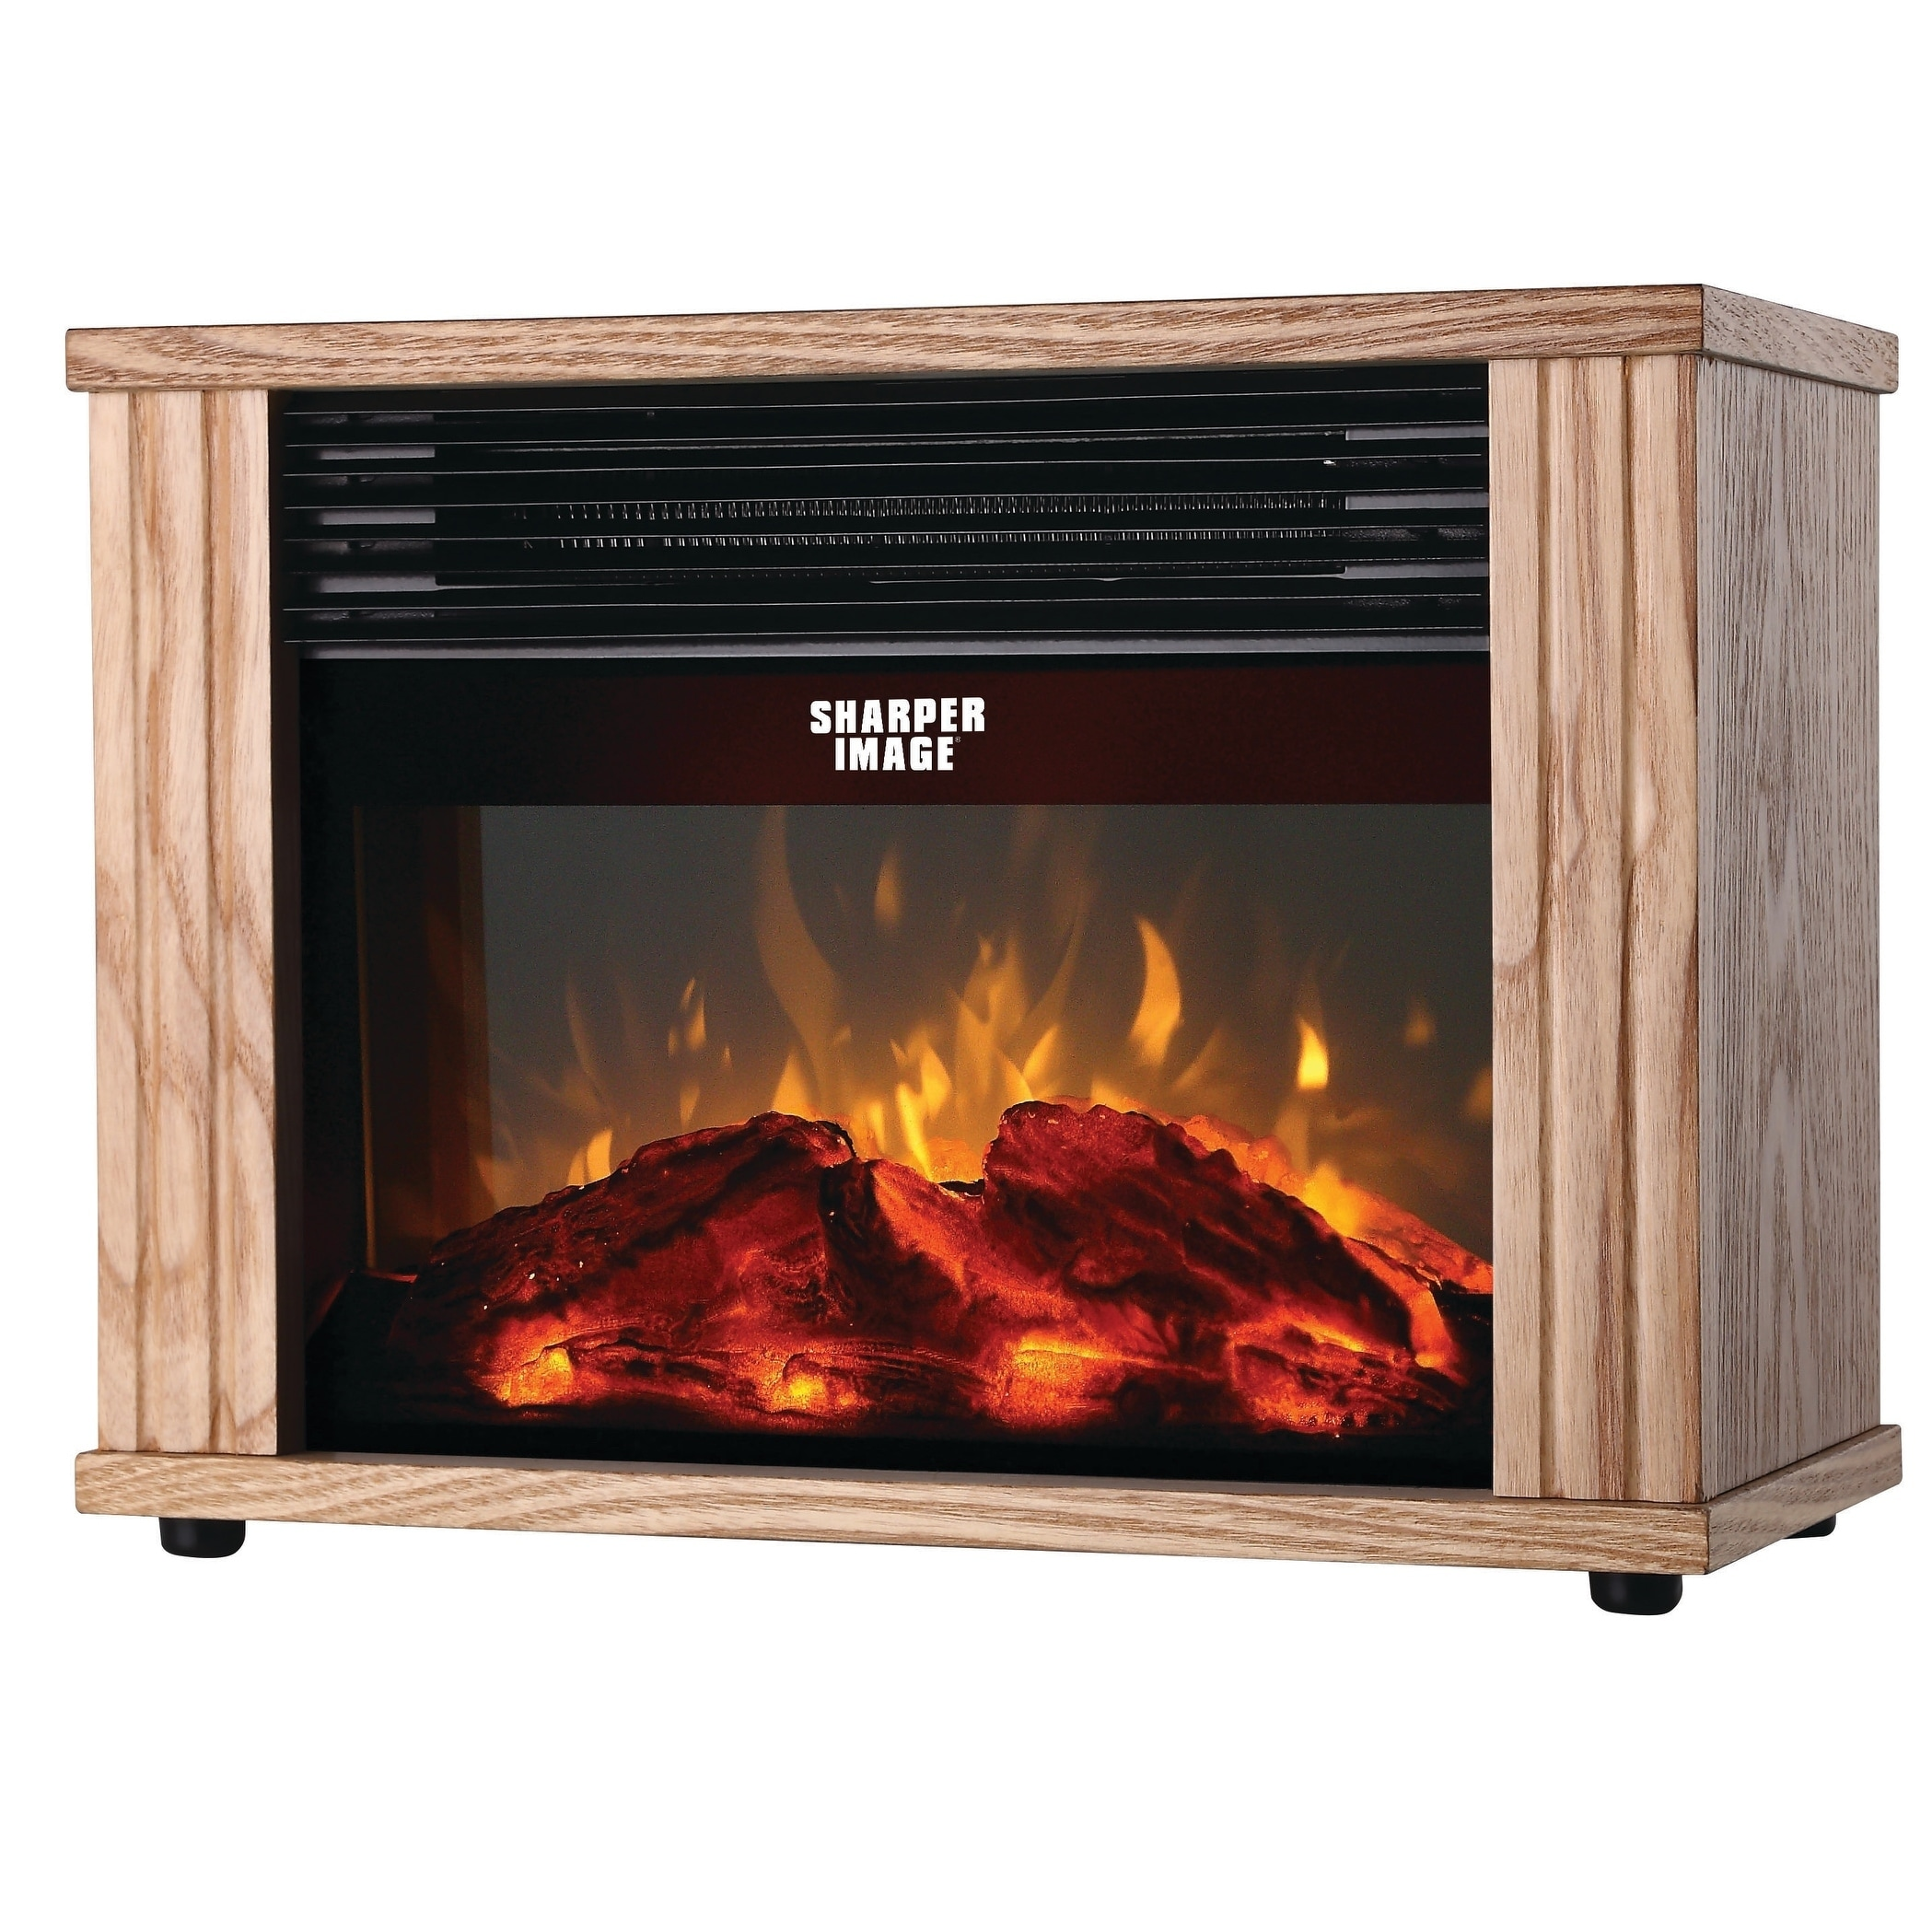 product free overstock space fireplace image today sharper home heater garden electronic shipping